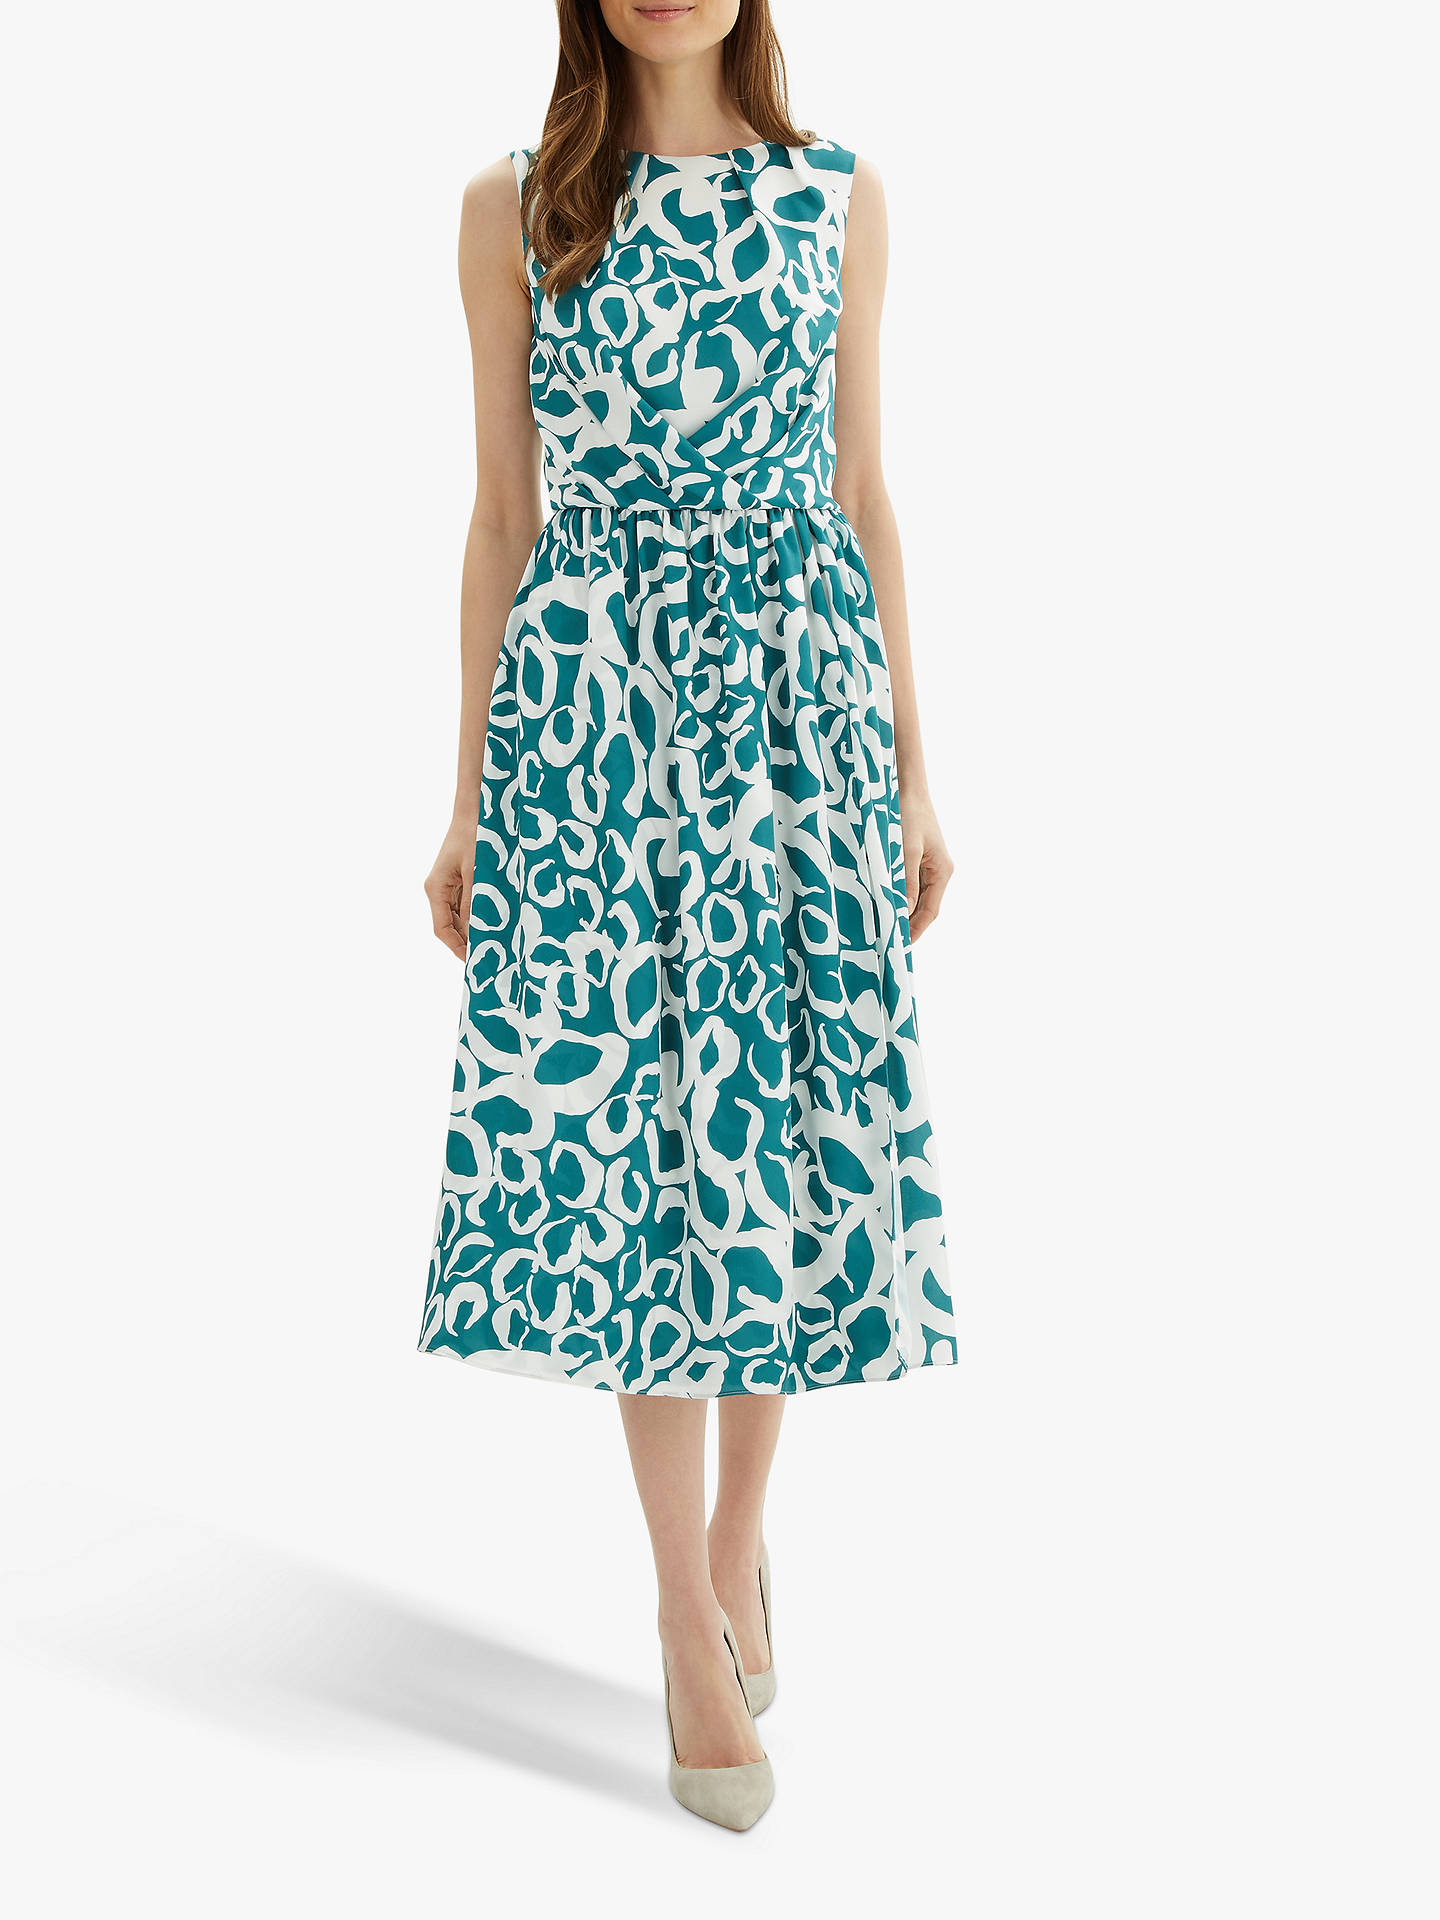 752e6c72c32 Buy Jaeger Fit and Flare Animal Print Dress